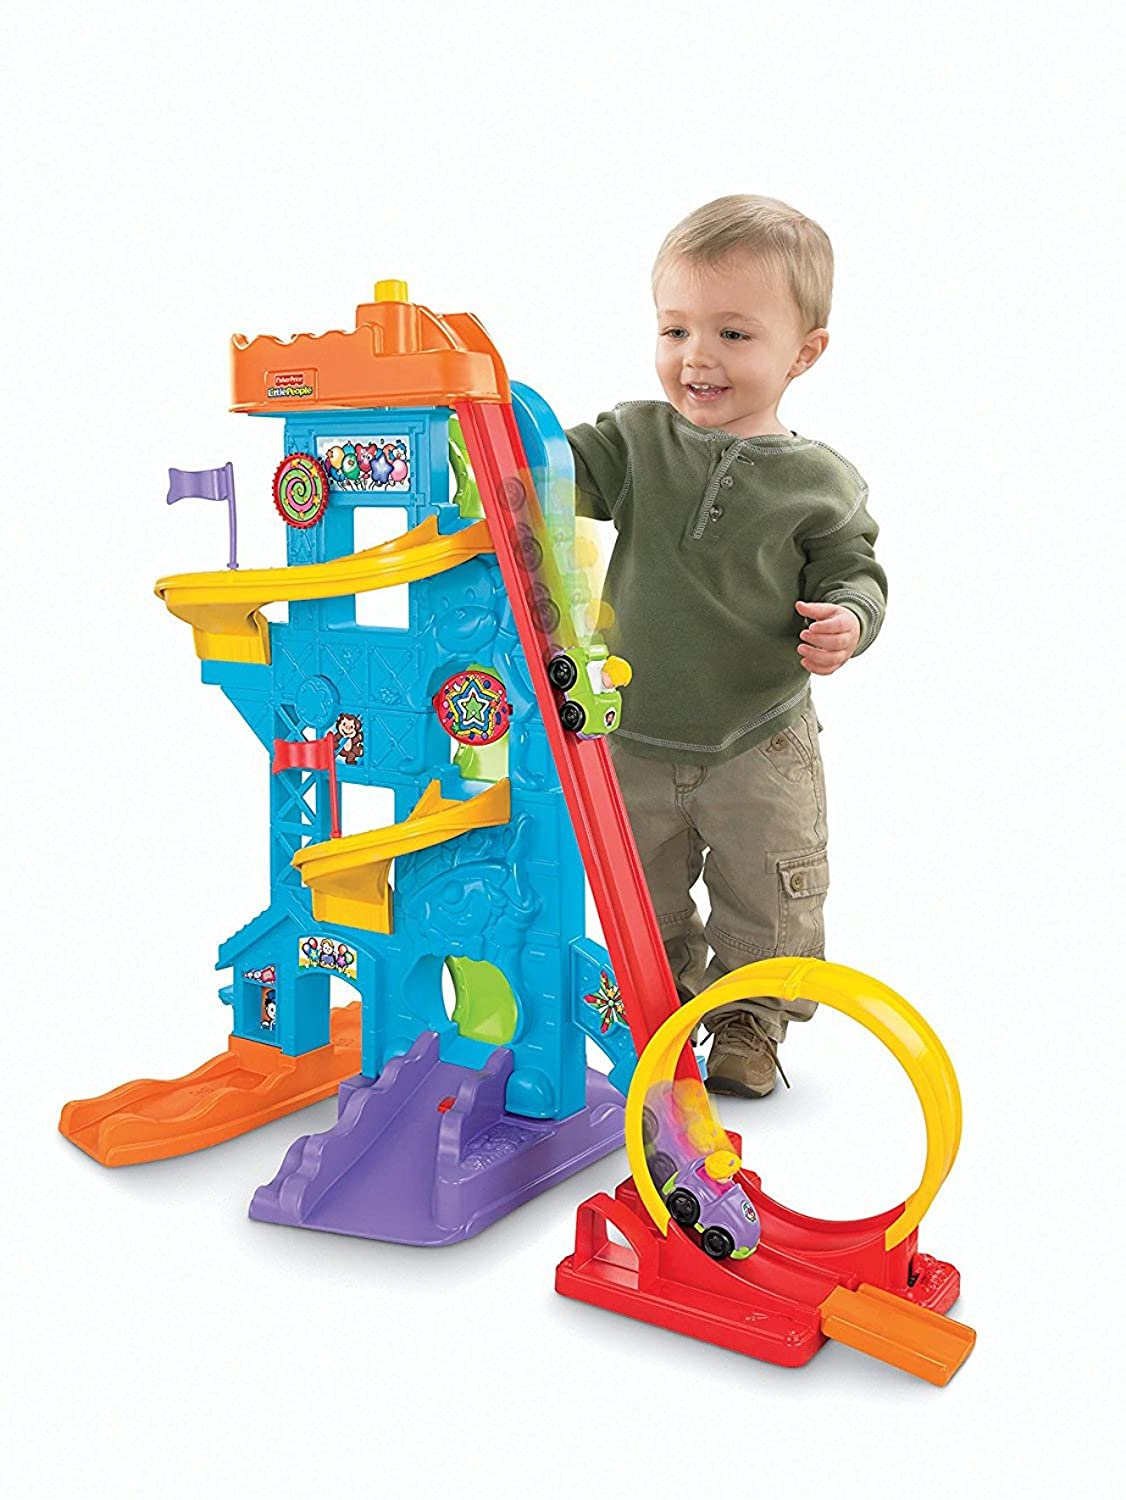 Toys For Boys 2 Years : Best toys gift ideas for year old boys reviewed in